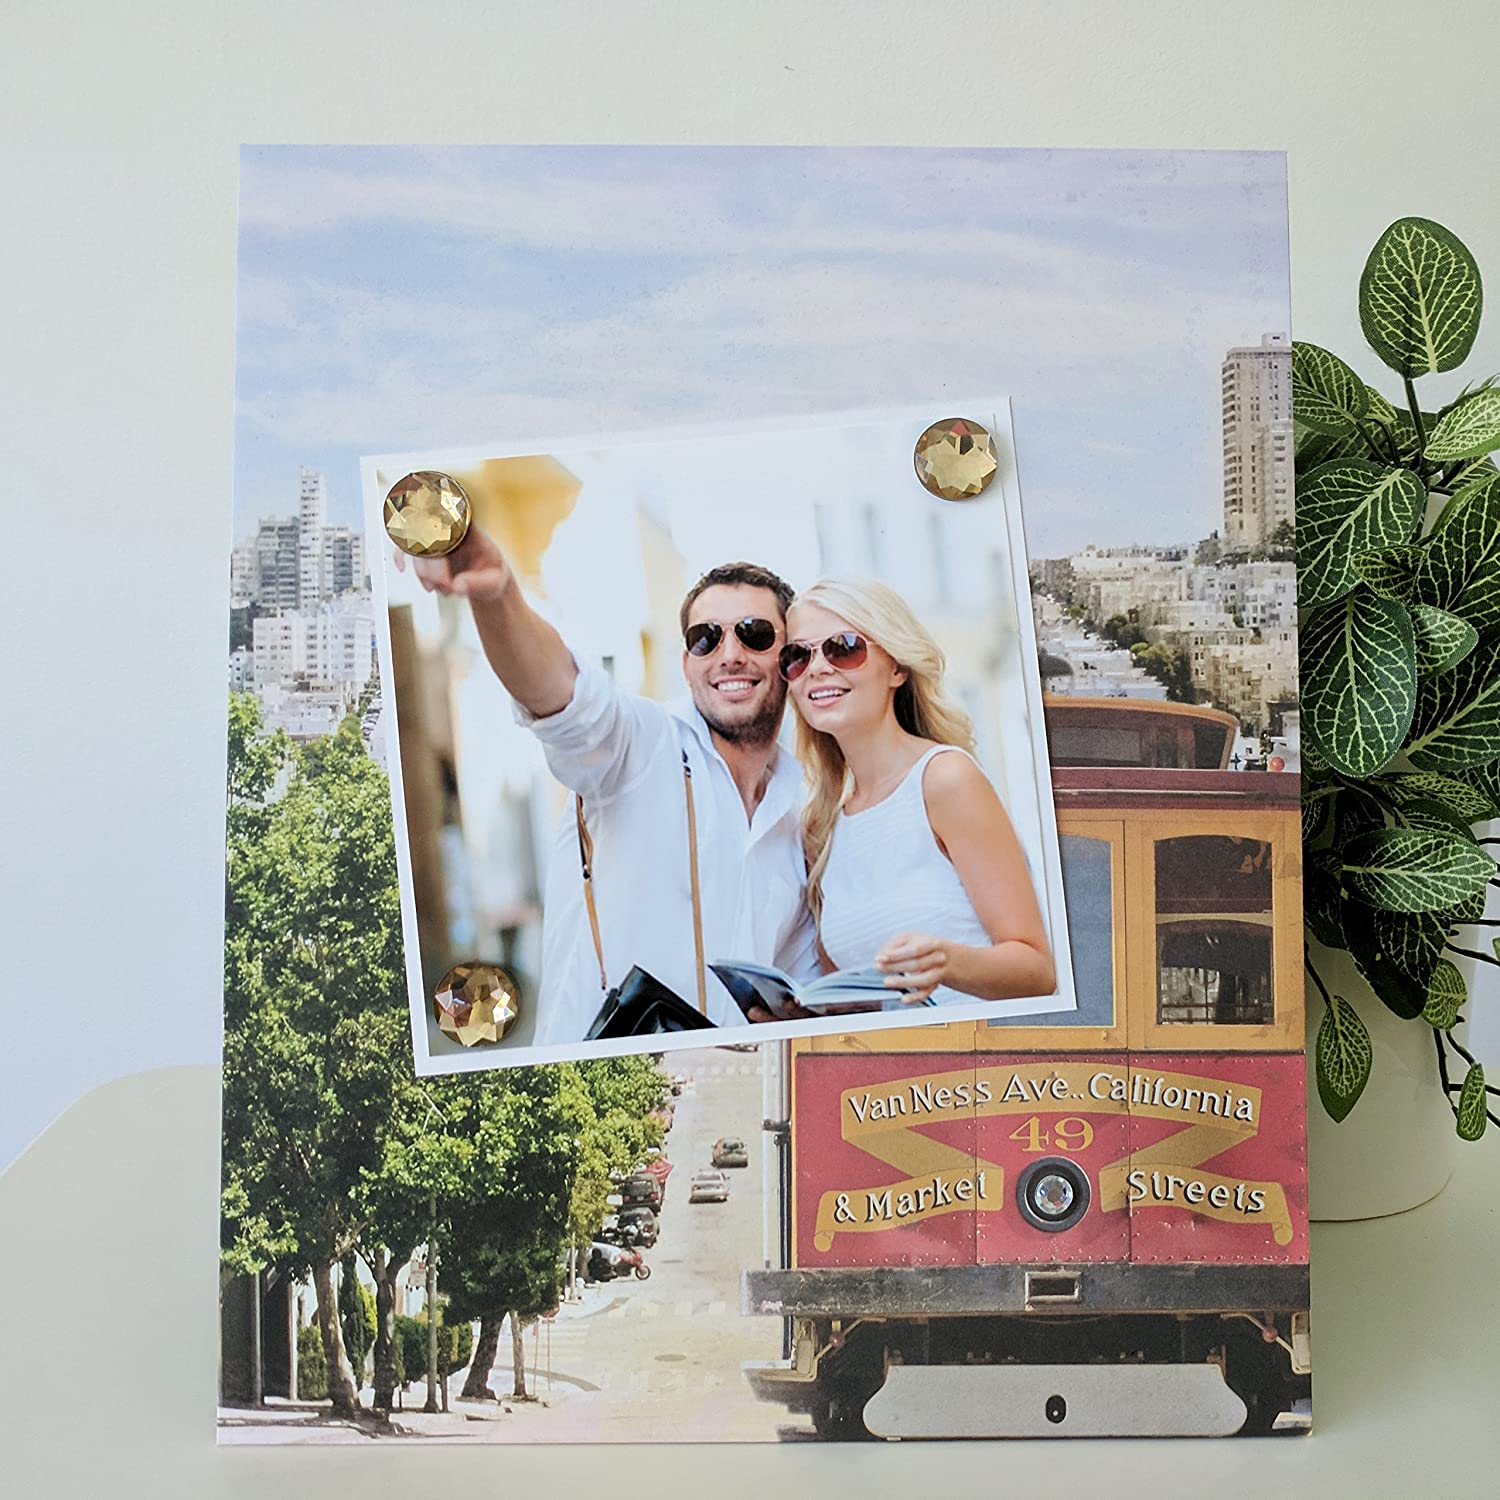 Vacation Travel Romantic Getaway Big City Urban Handmade Gift Present Home Decor Magnetic Picture Frame Size 9 x 11 Holds 5 x 7 Photo San Francisco Cable Car